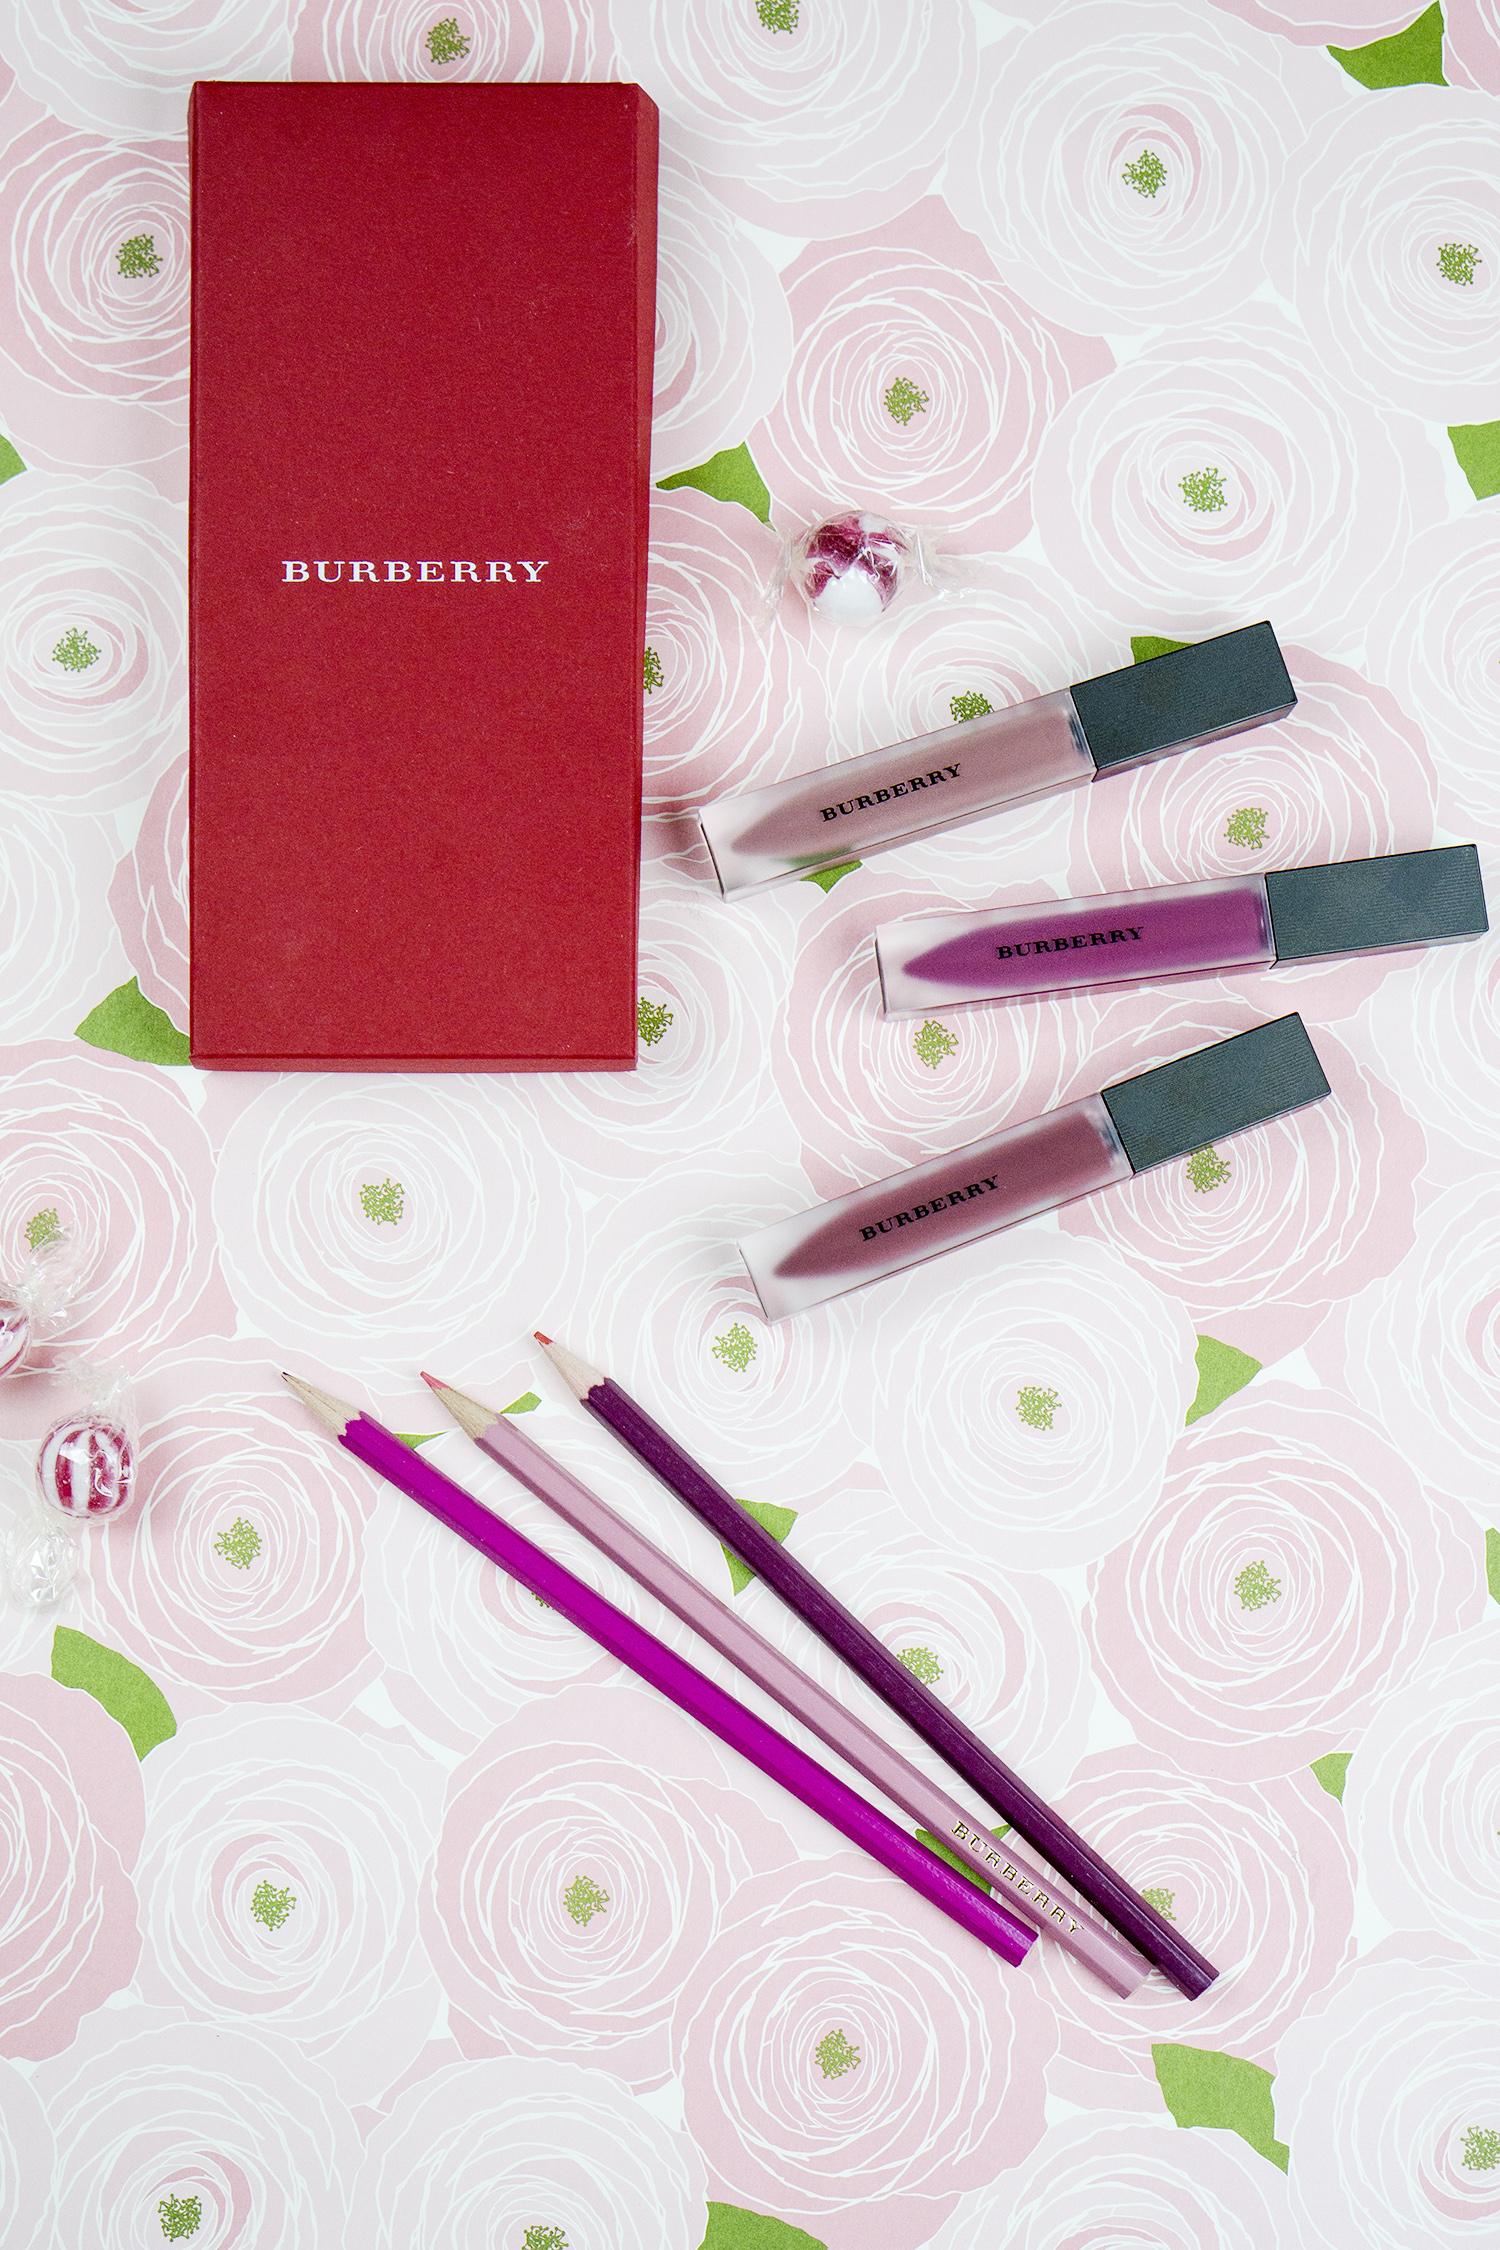 Burberry Liquid Lip Velvet Review